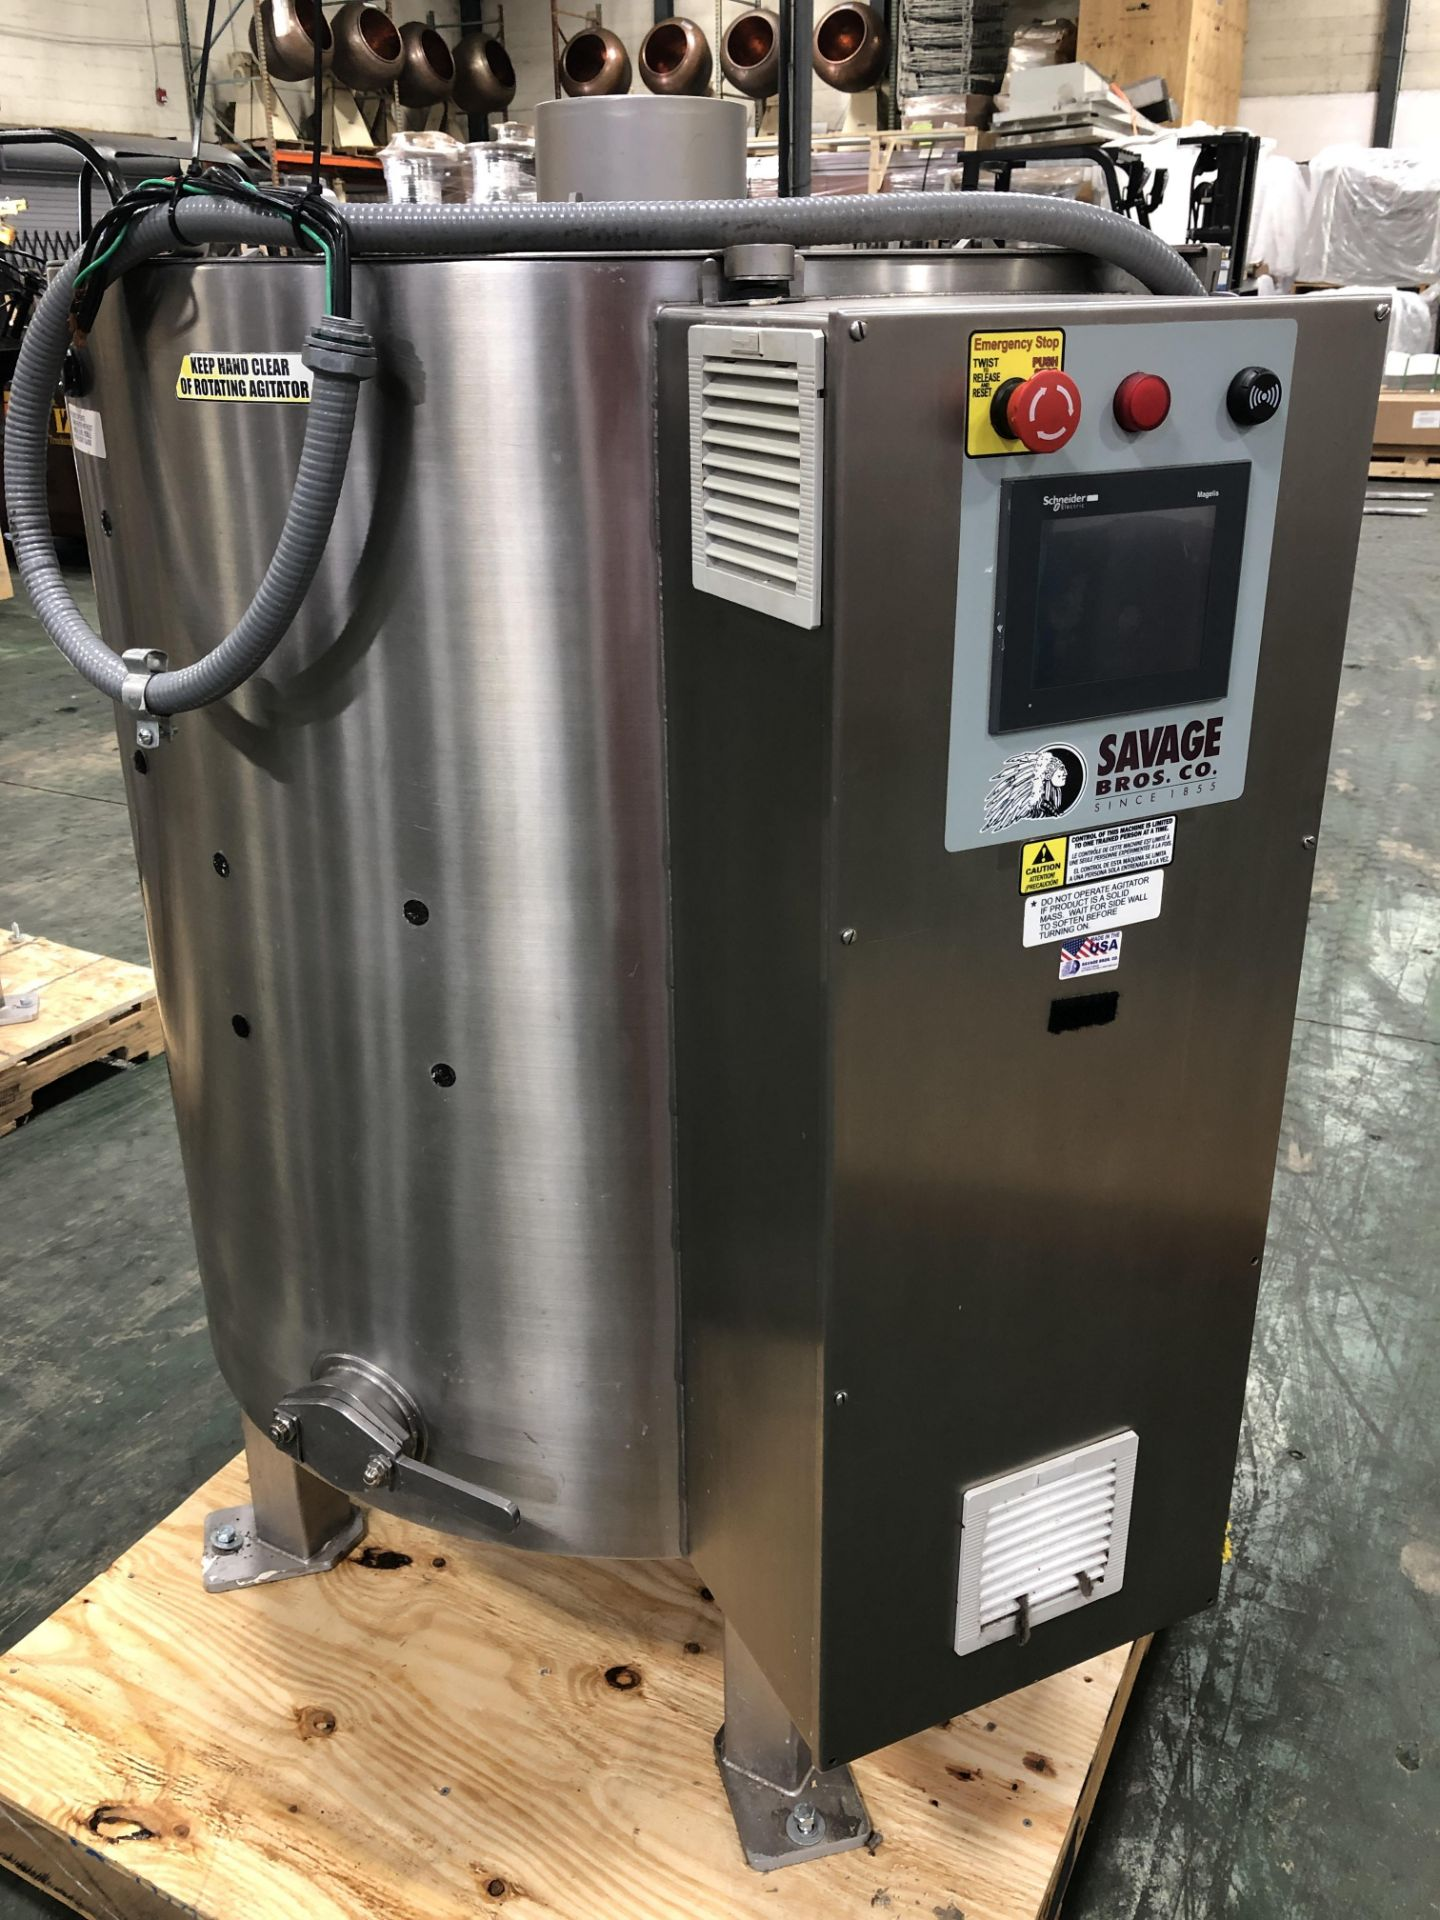 Lot 37 - Savage Stainless Steel 1250-lb Chocolate Melter, model 0974-36, with PLC touchscreen controls